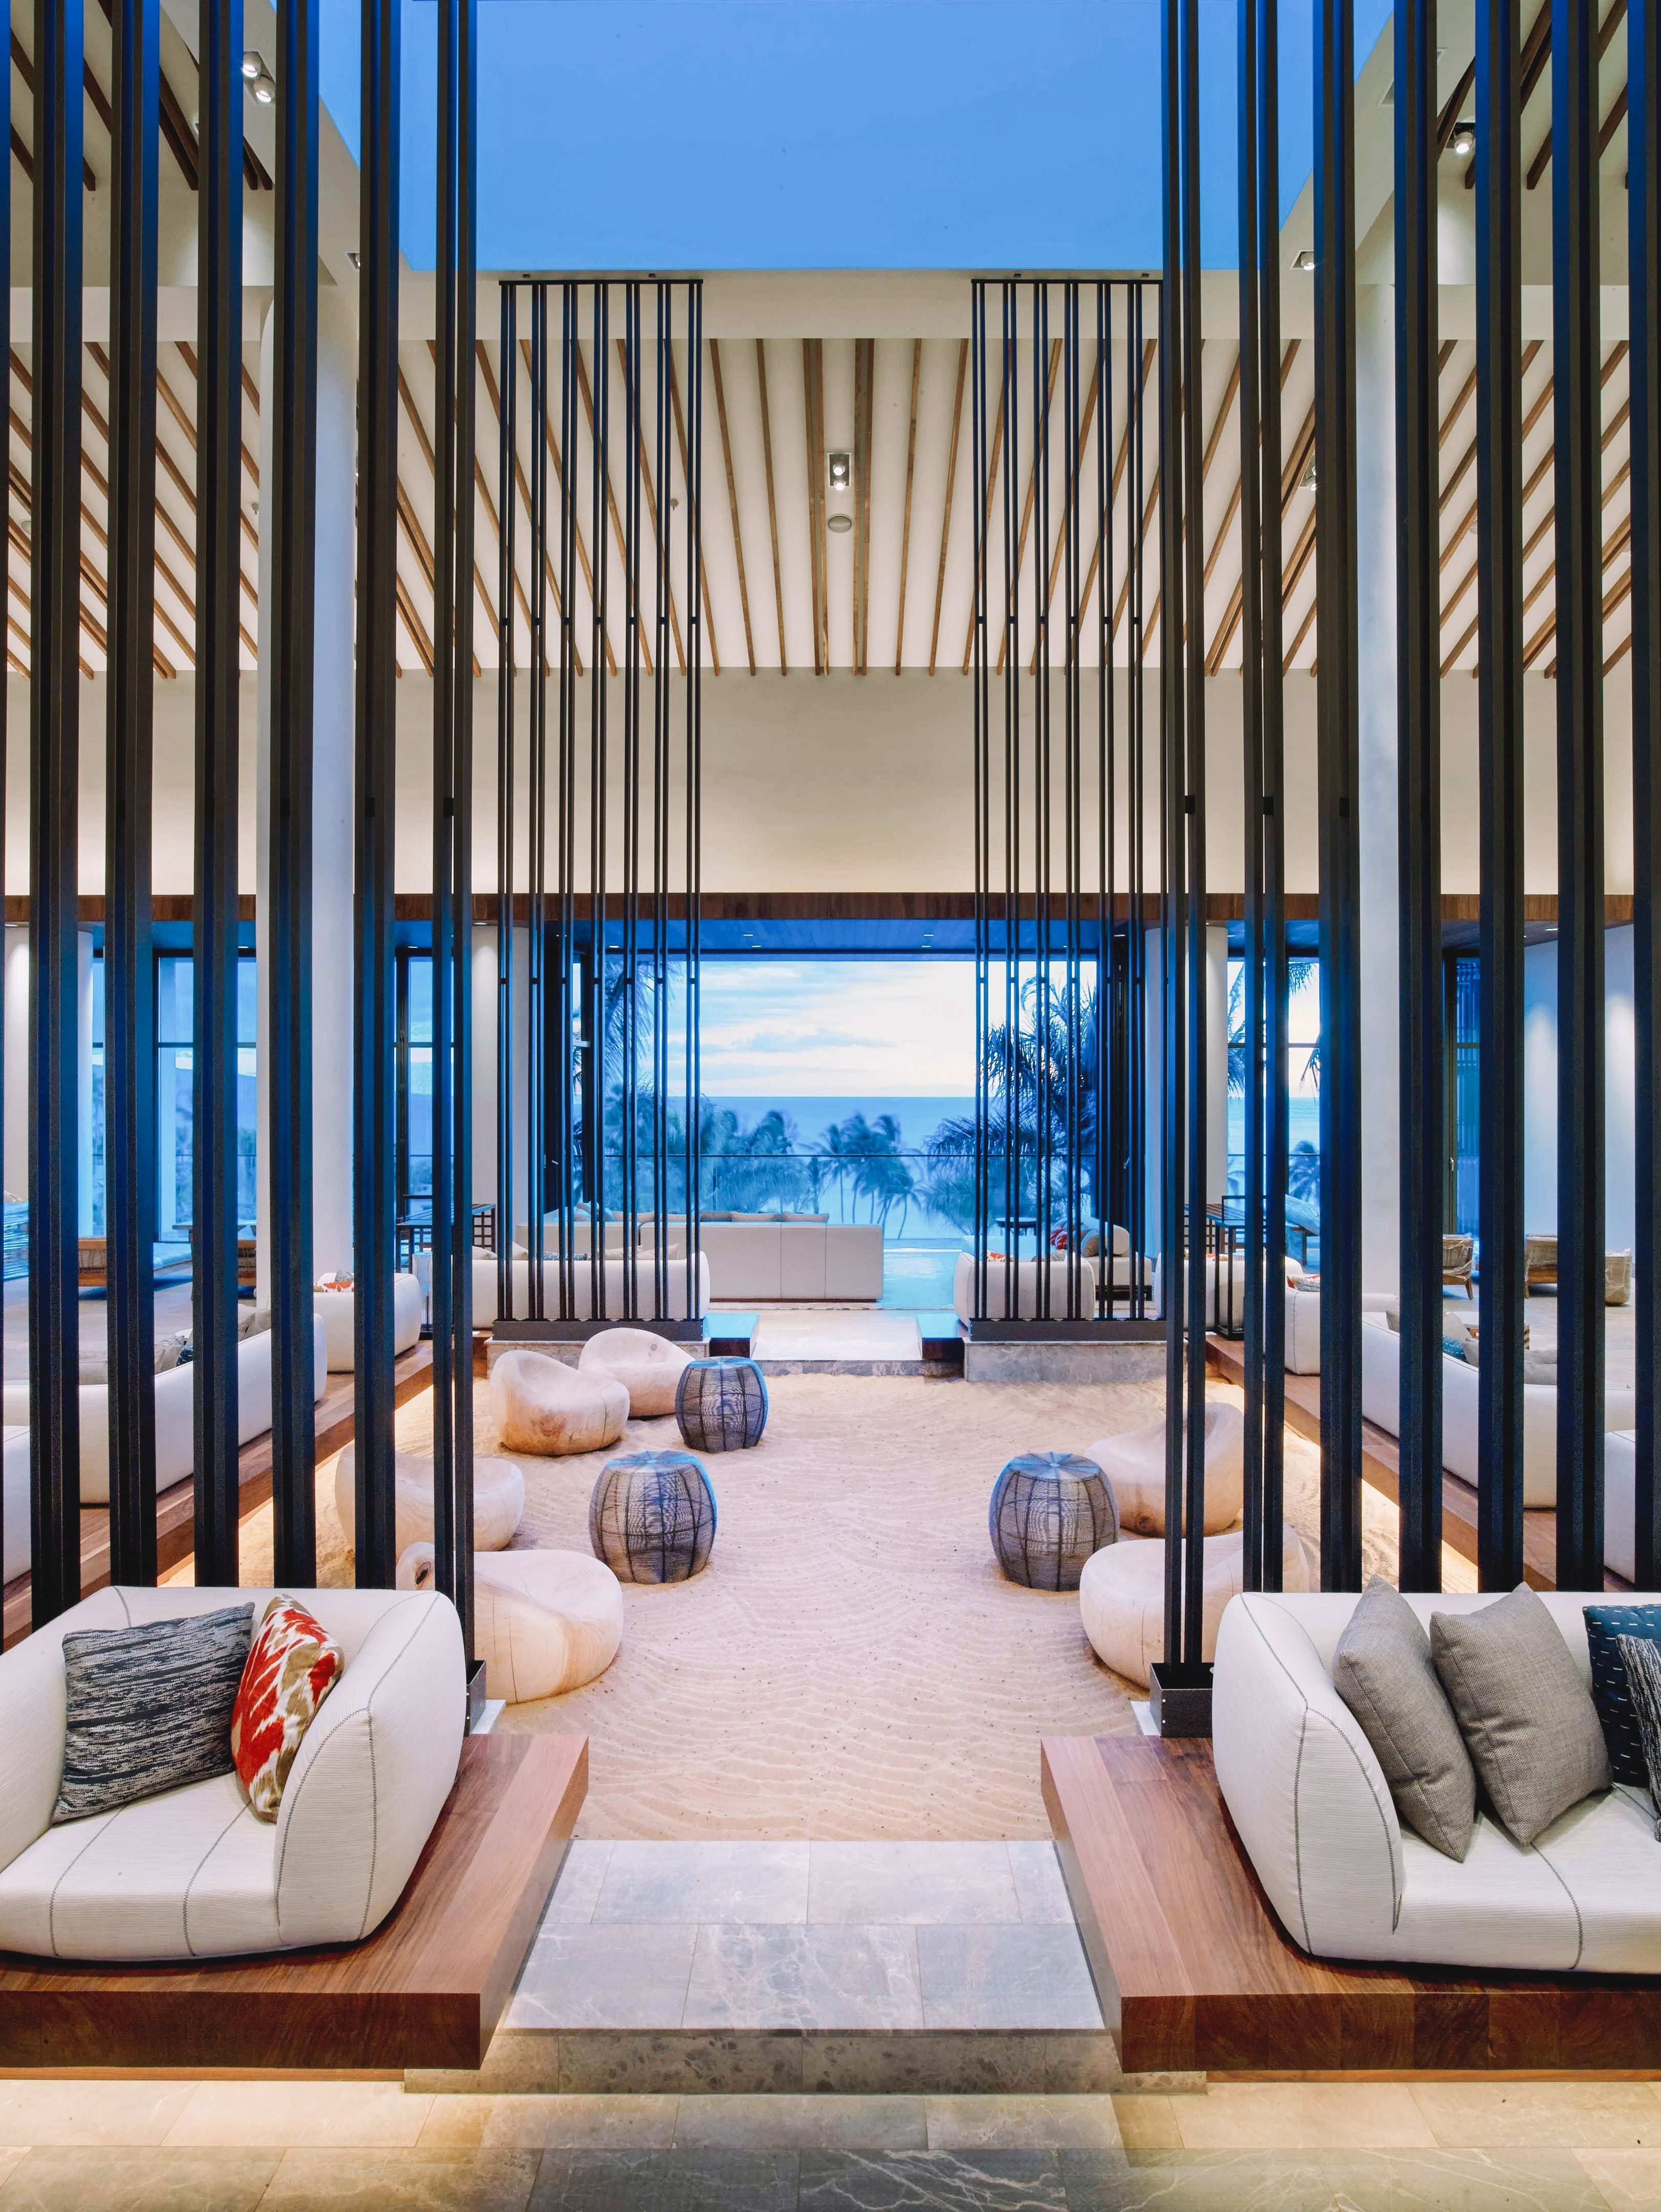 Exceptional Designed By The Award Winning Architecture And Design Firm Rockwell Group,  Andaz Maui At Waileau0027s Intentions Are To Reflect The Spirit Of Todayu0027s  Hawaii ...